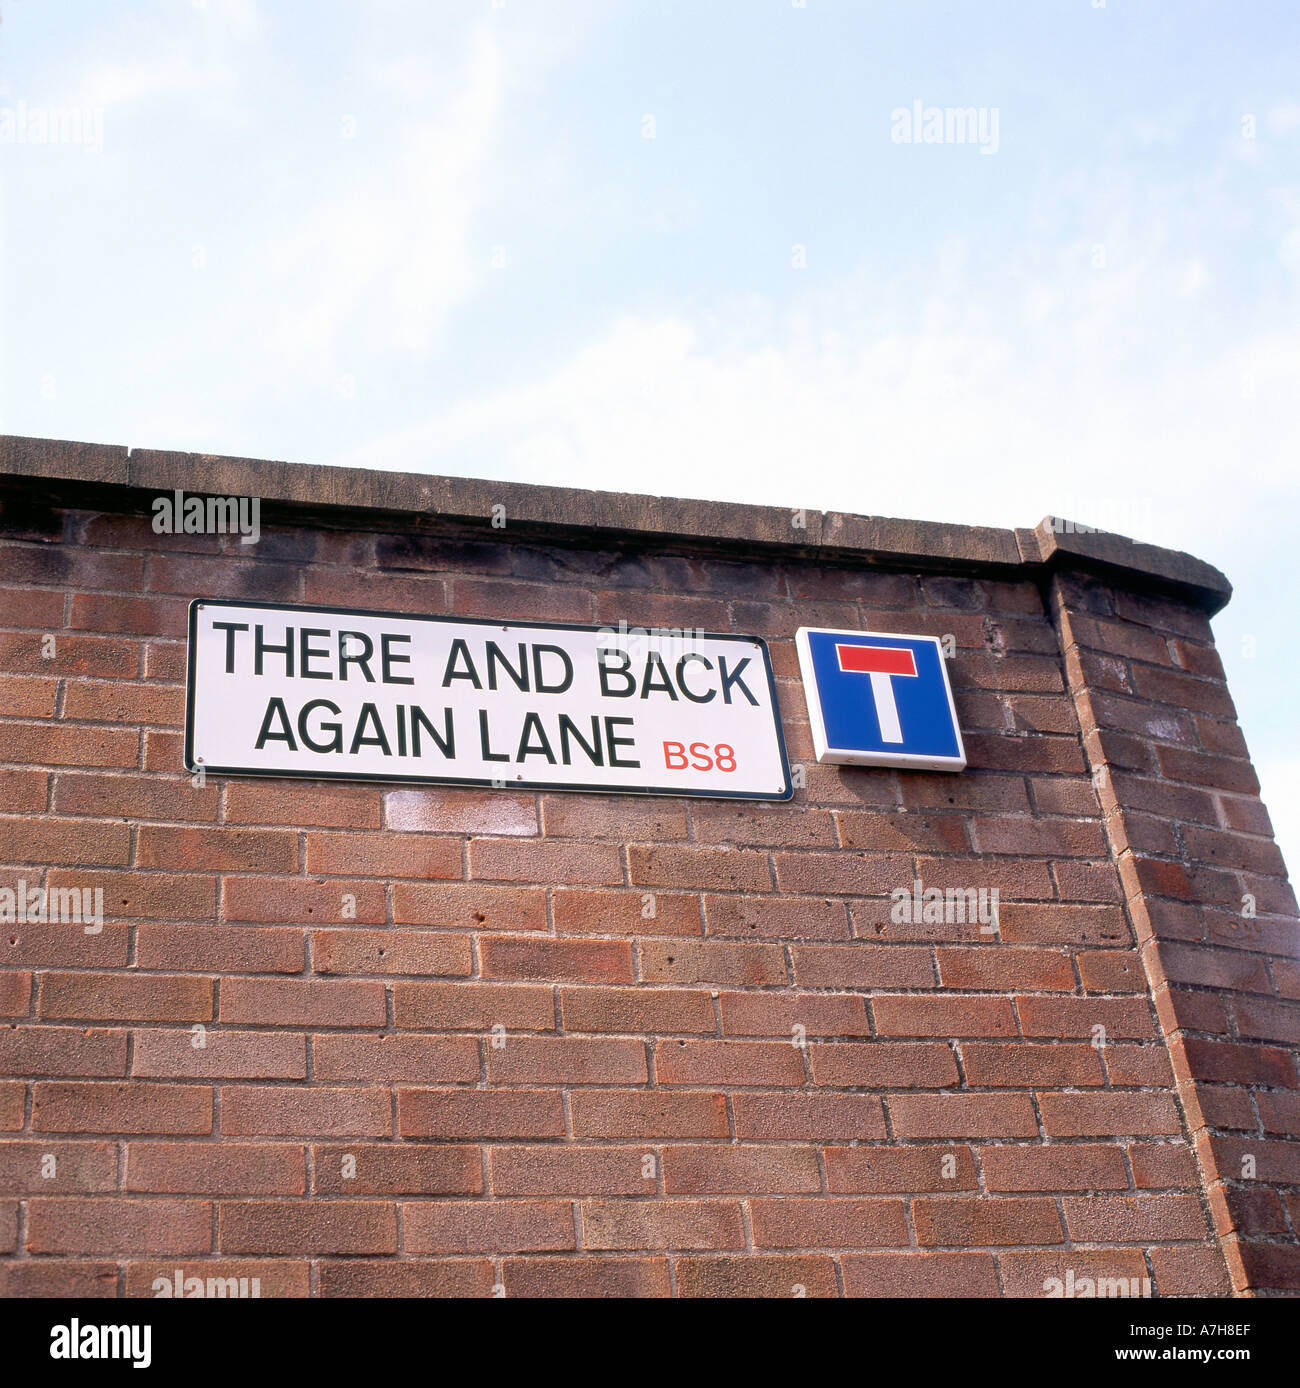 A dead end street sign entitled 'There and Back Again Lane' displayed on a brick wall in Bristol England - Stock Image